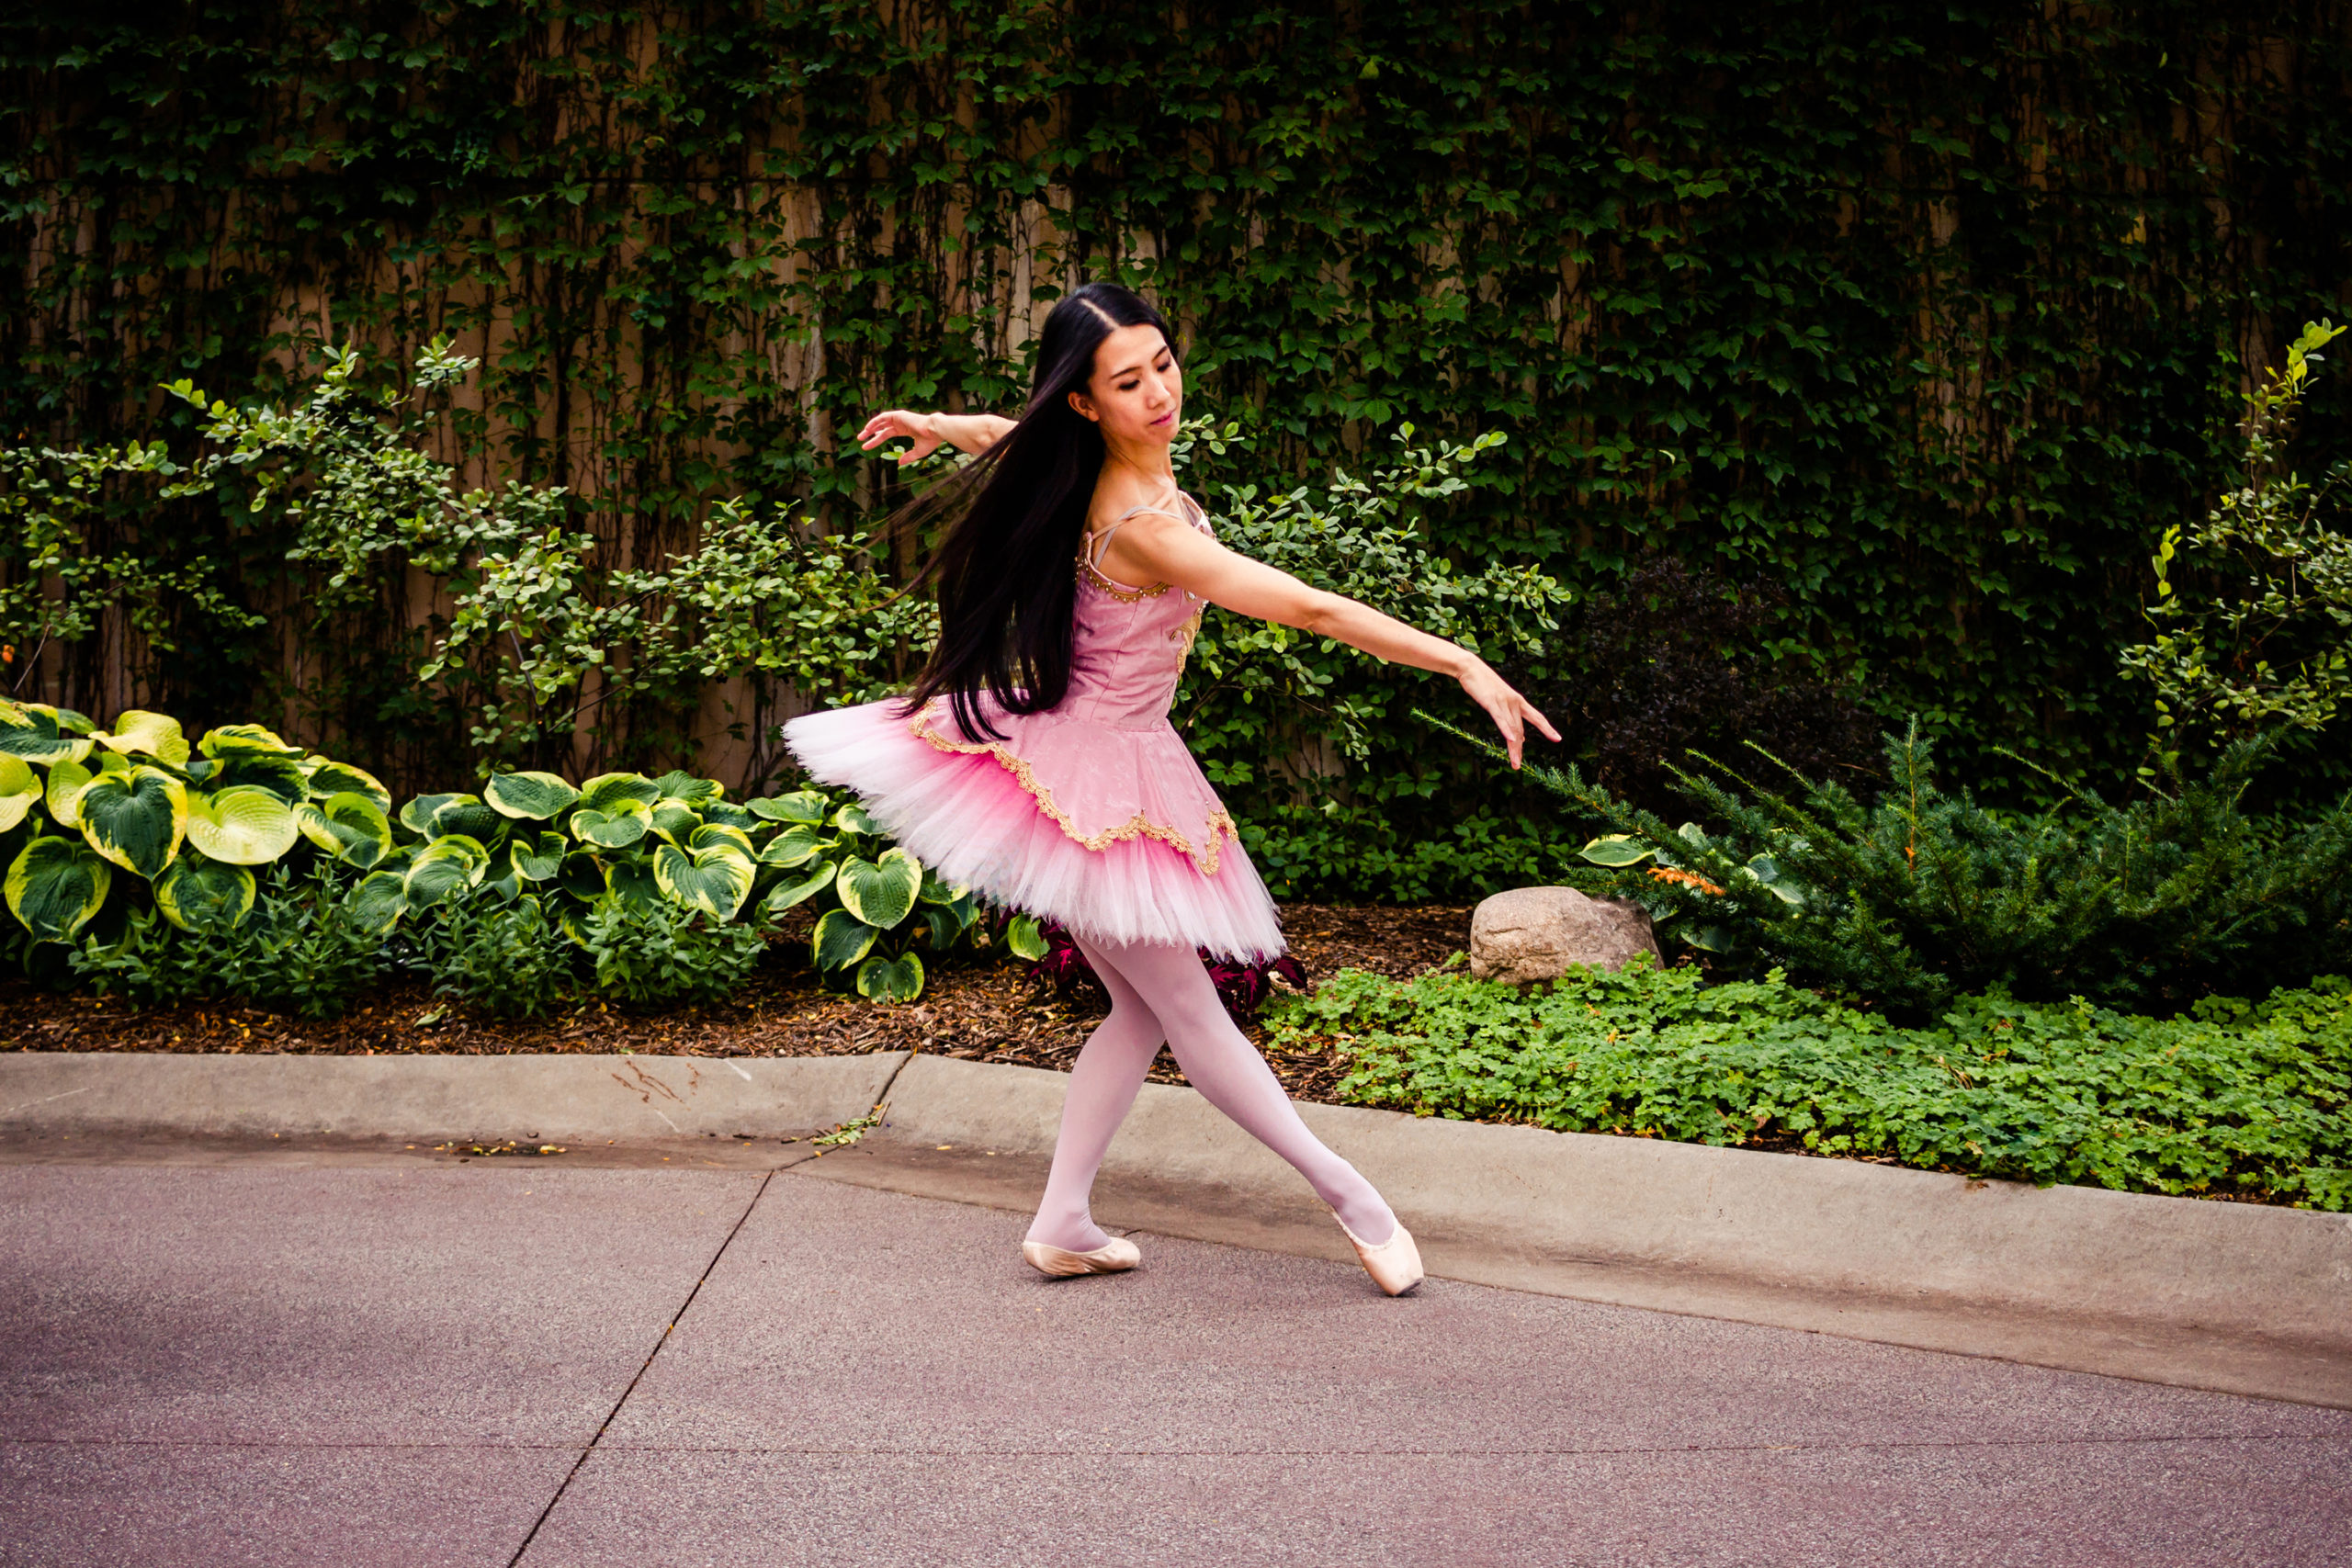 Professional Dancer - Tutu - Dance Photographer